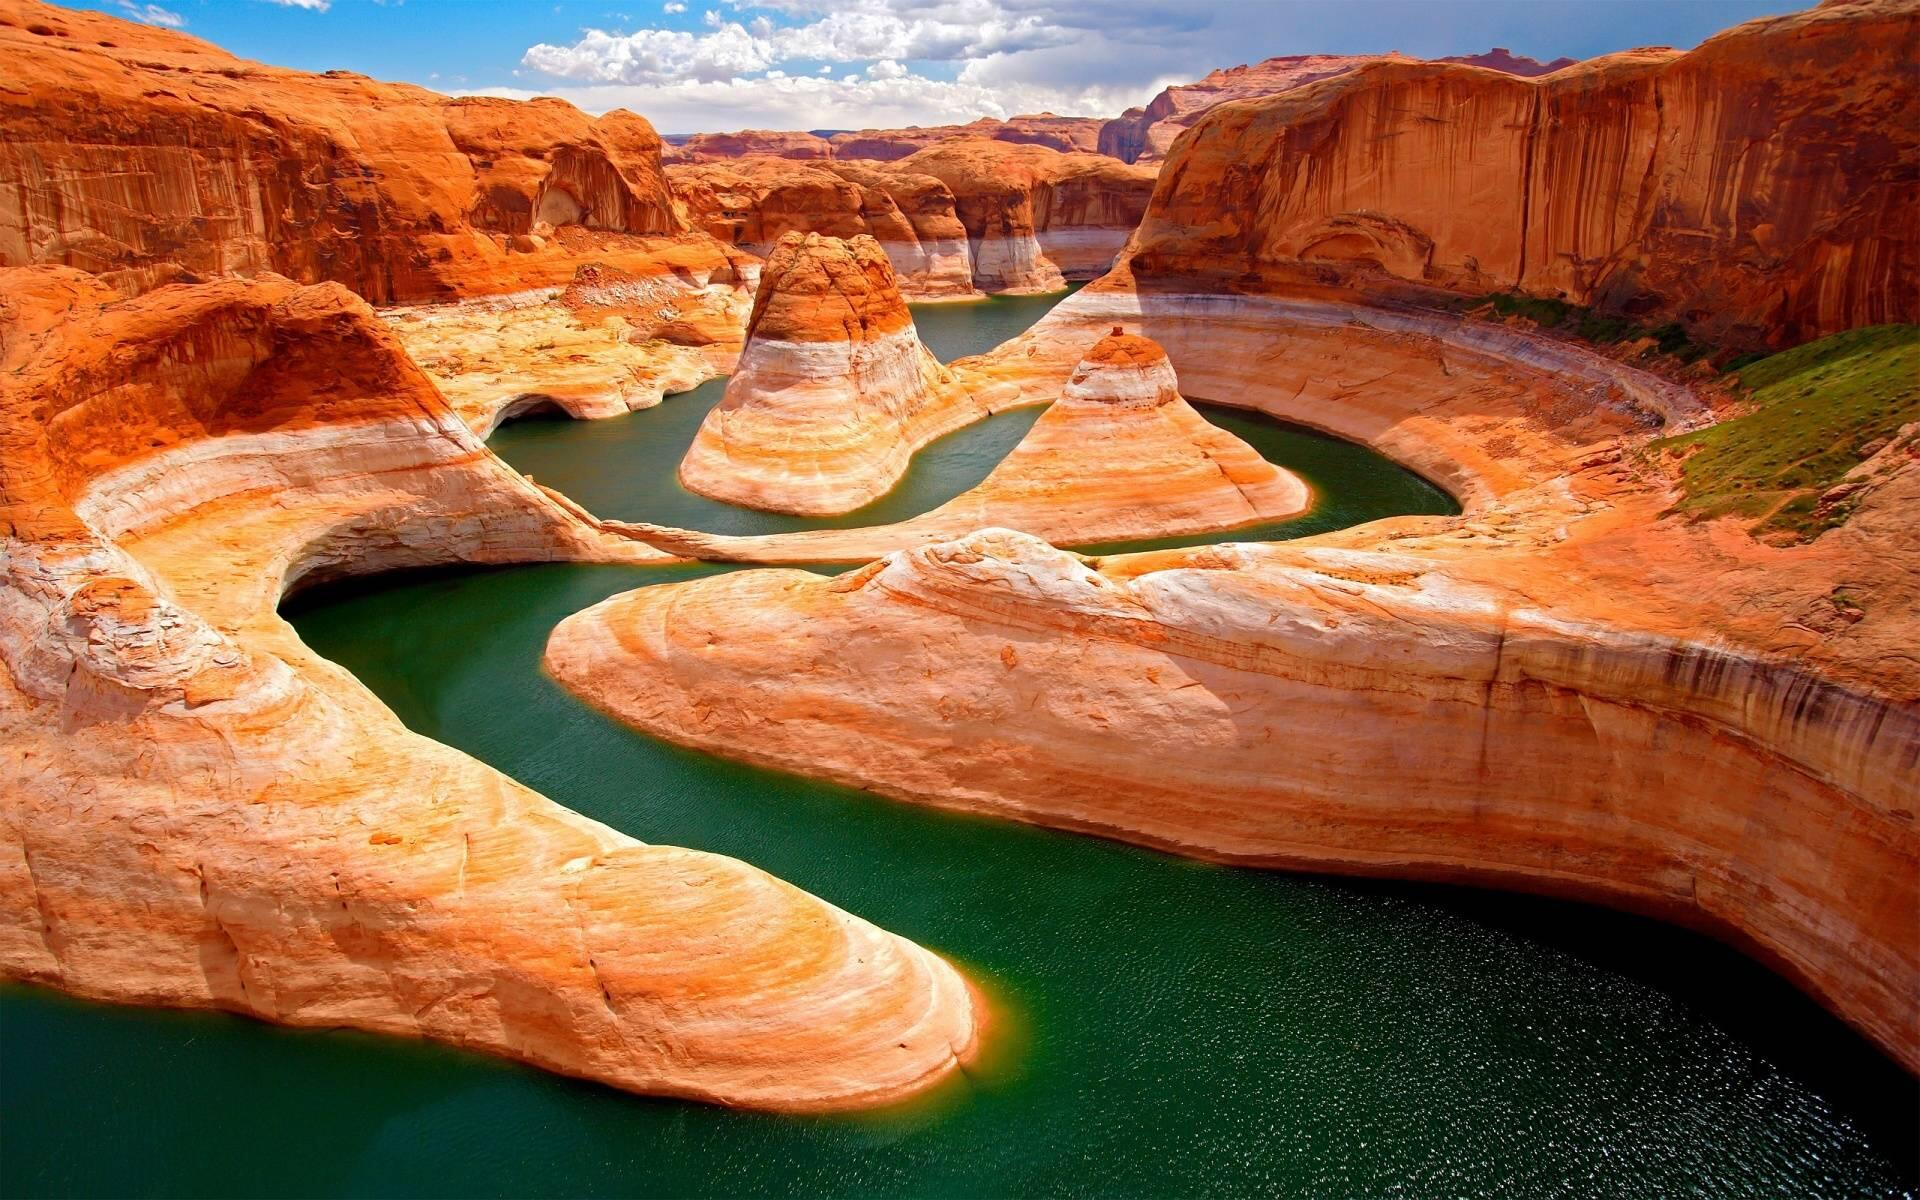 Glen Canyon, Utah. http://t.co/GenAZzZDjO